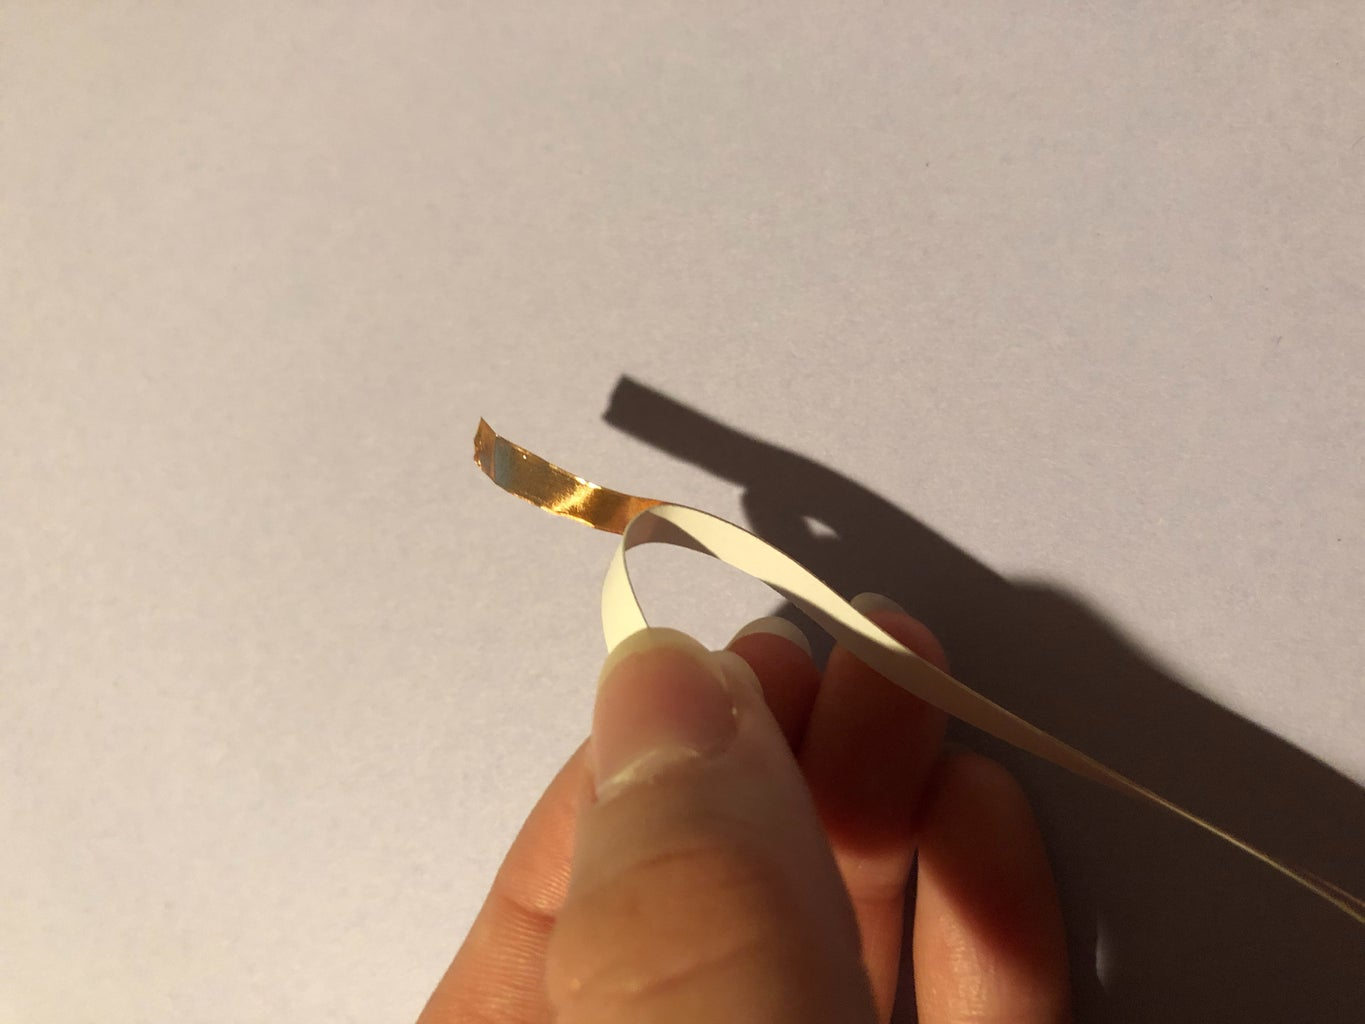 Step 3: How to Use Copper Tape